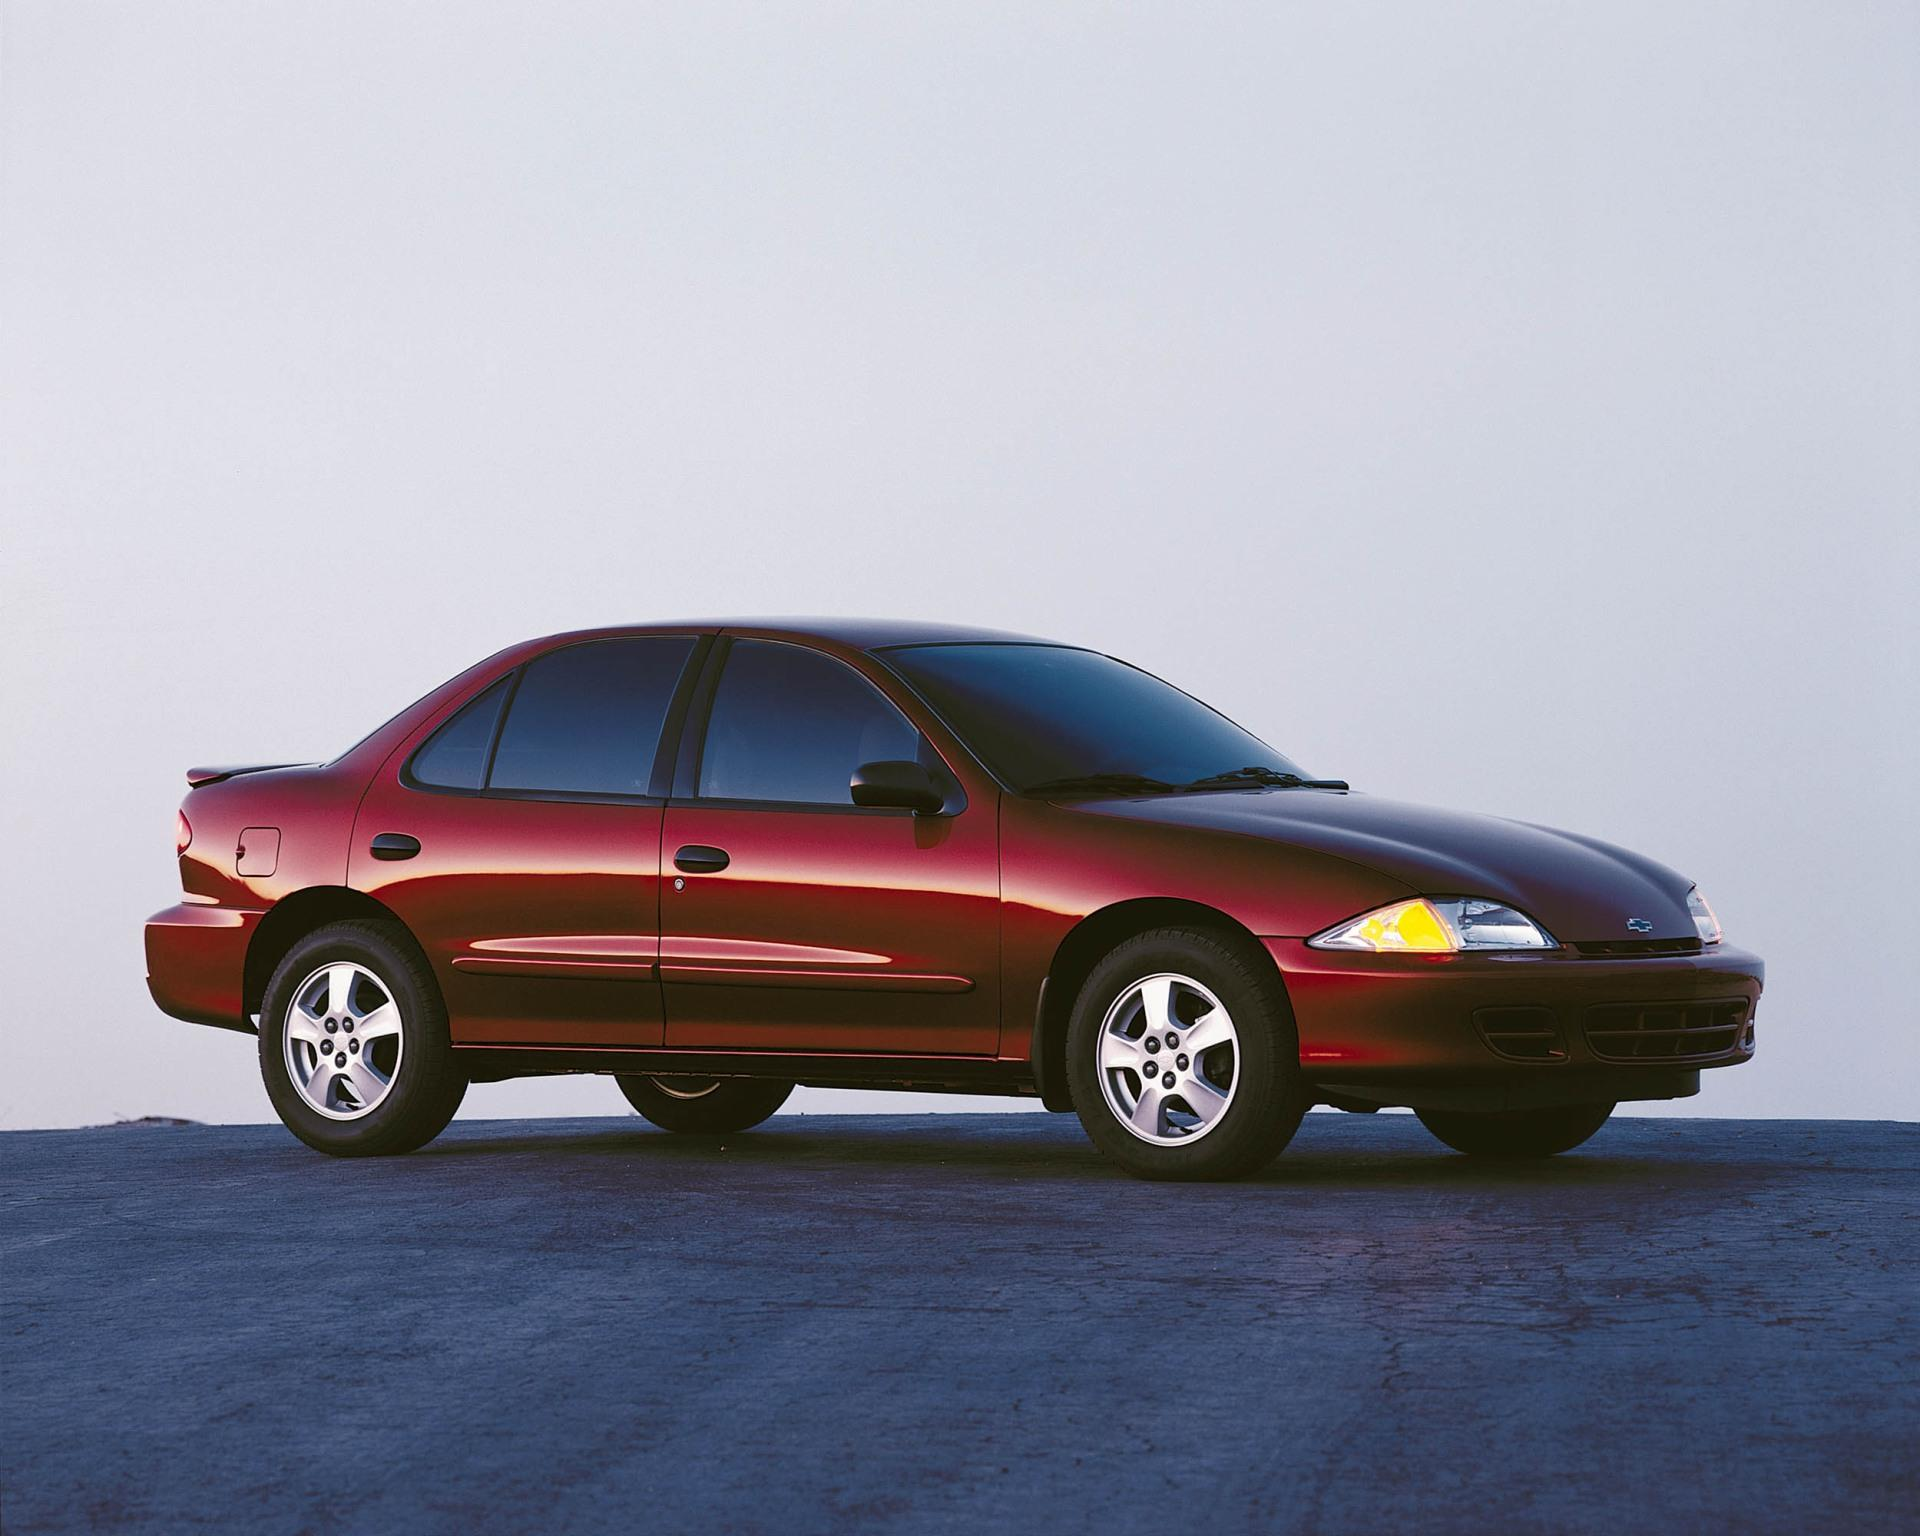 chevrolet cavalier coupe (j) 1995 models #14